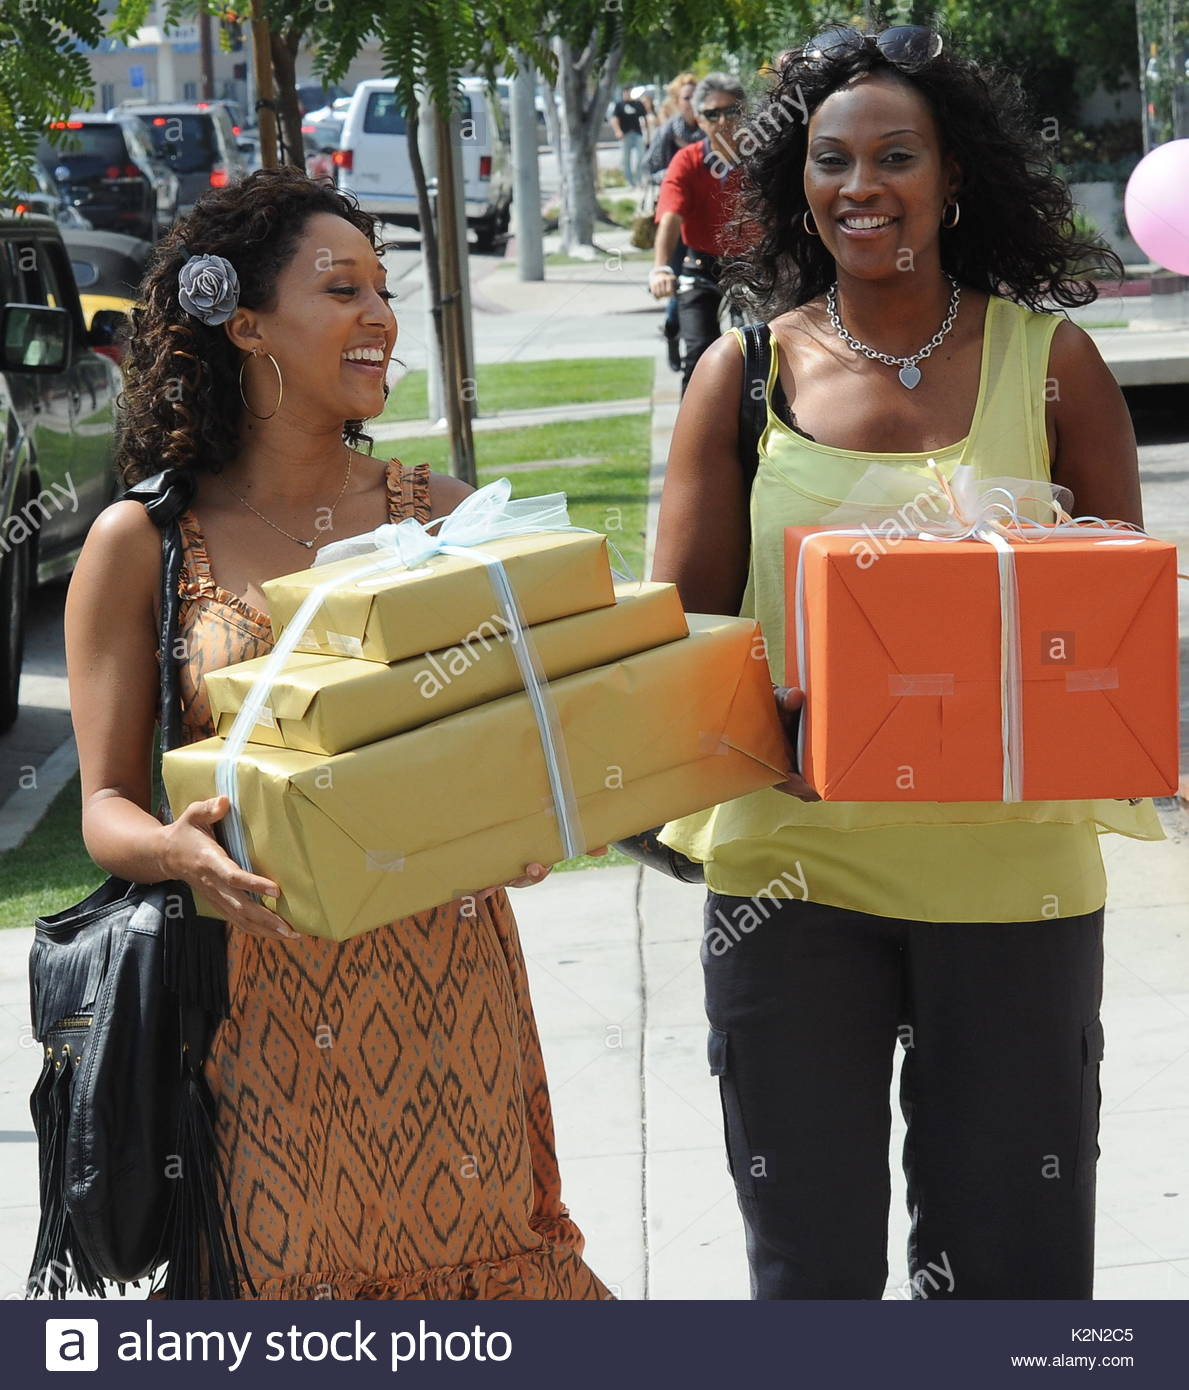 Tamera Mowrey Tamera Mowry Picks Up Some Baby Shower Items For Her